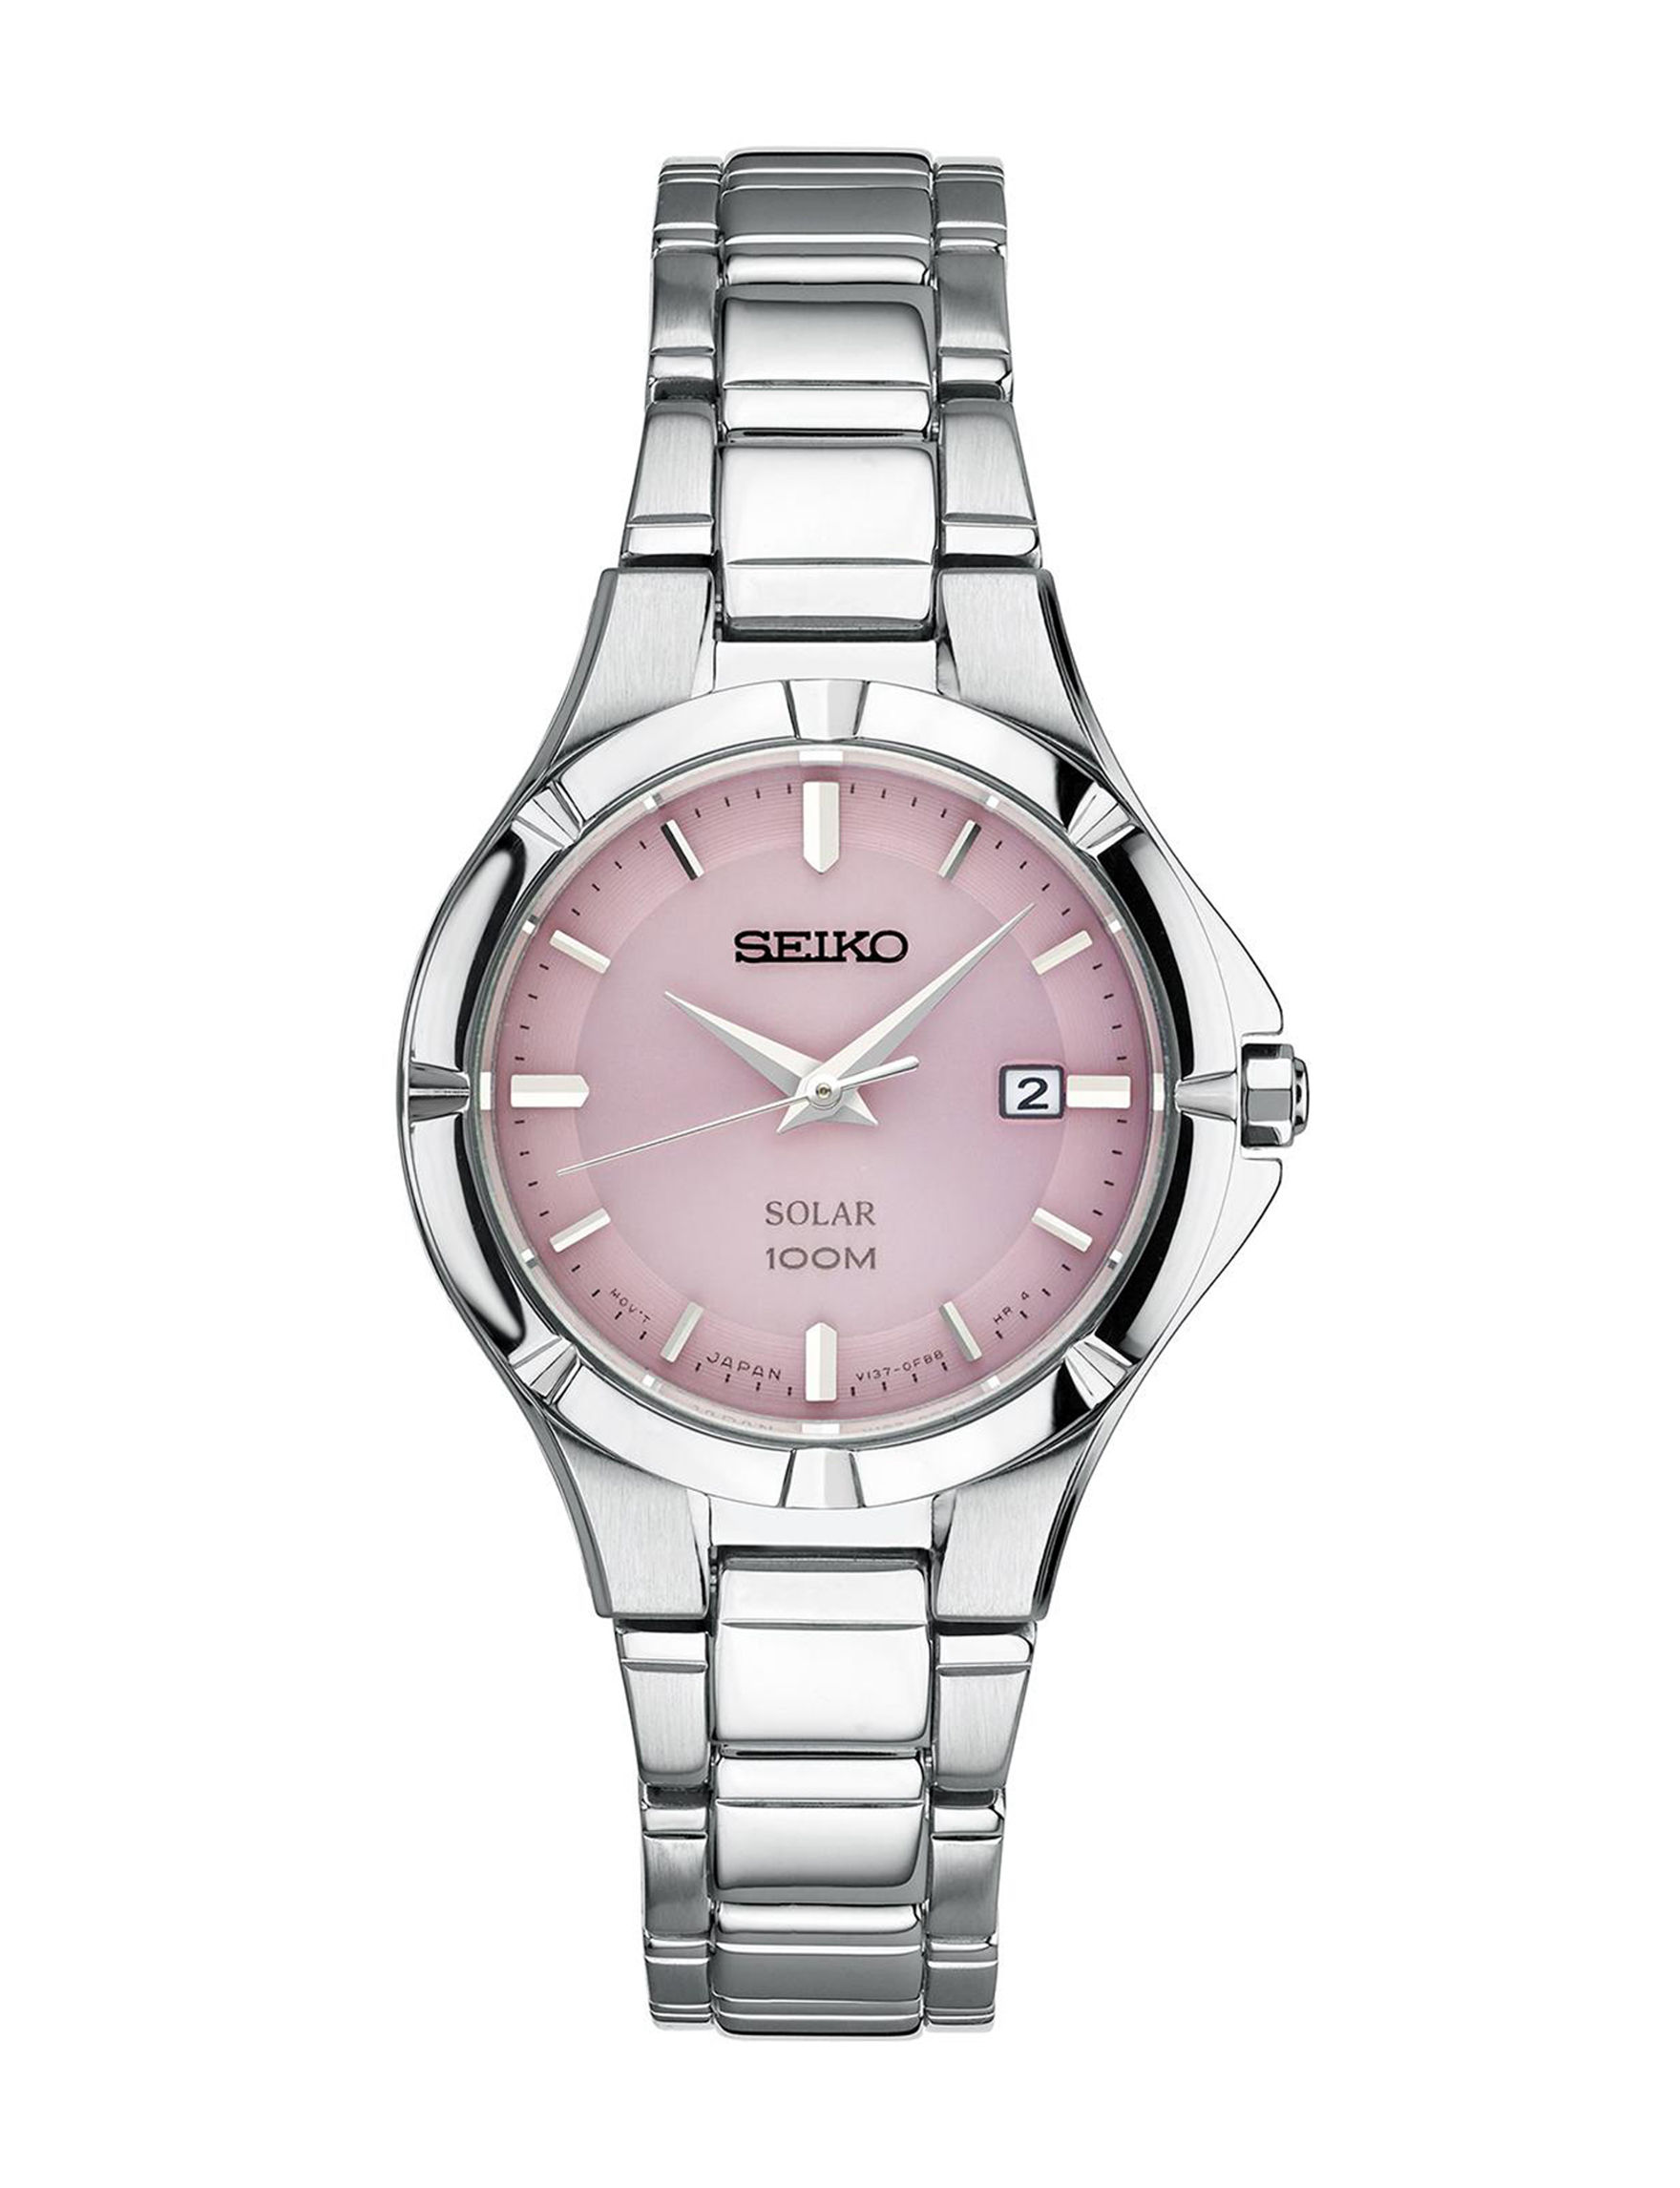 Seiko Silver Fashion Watches